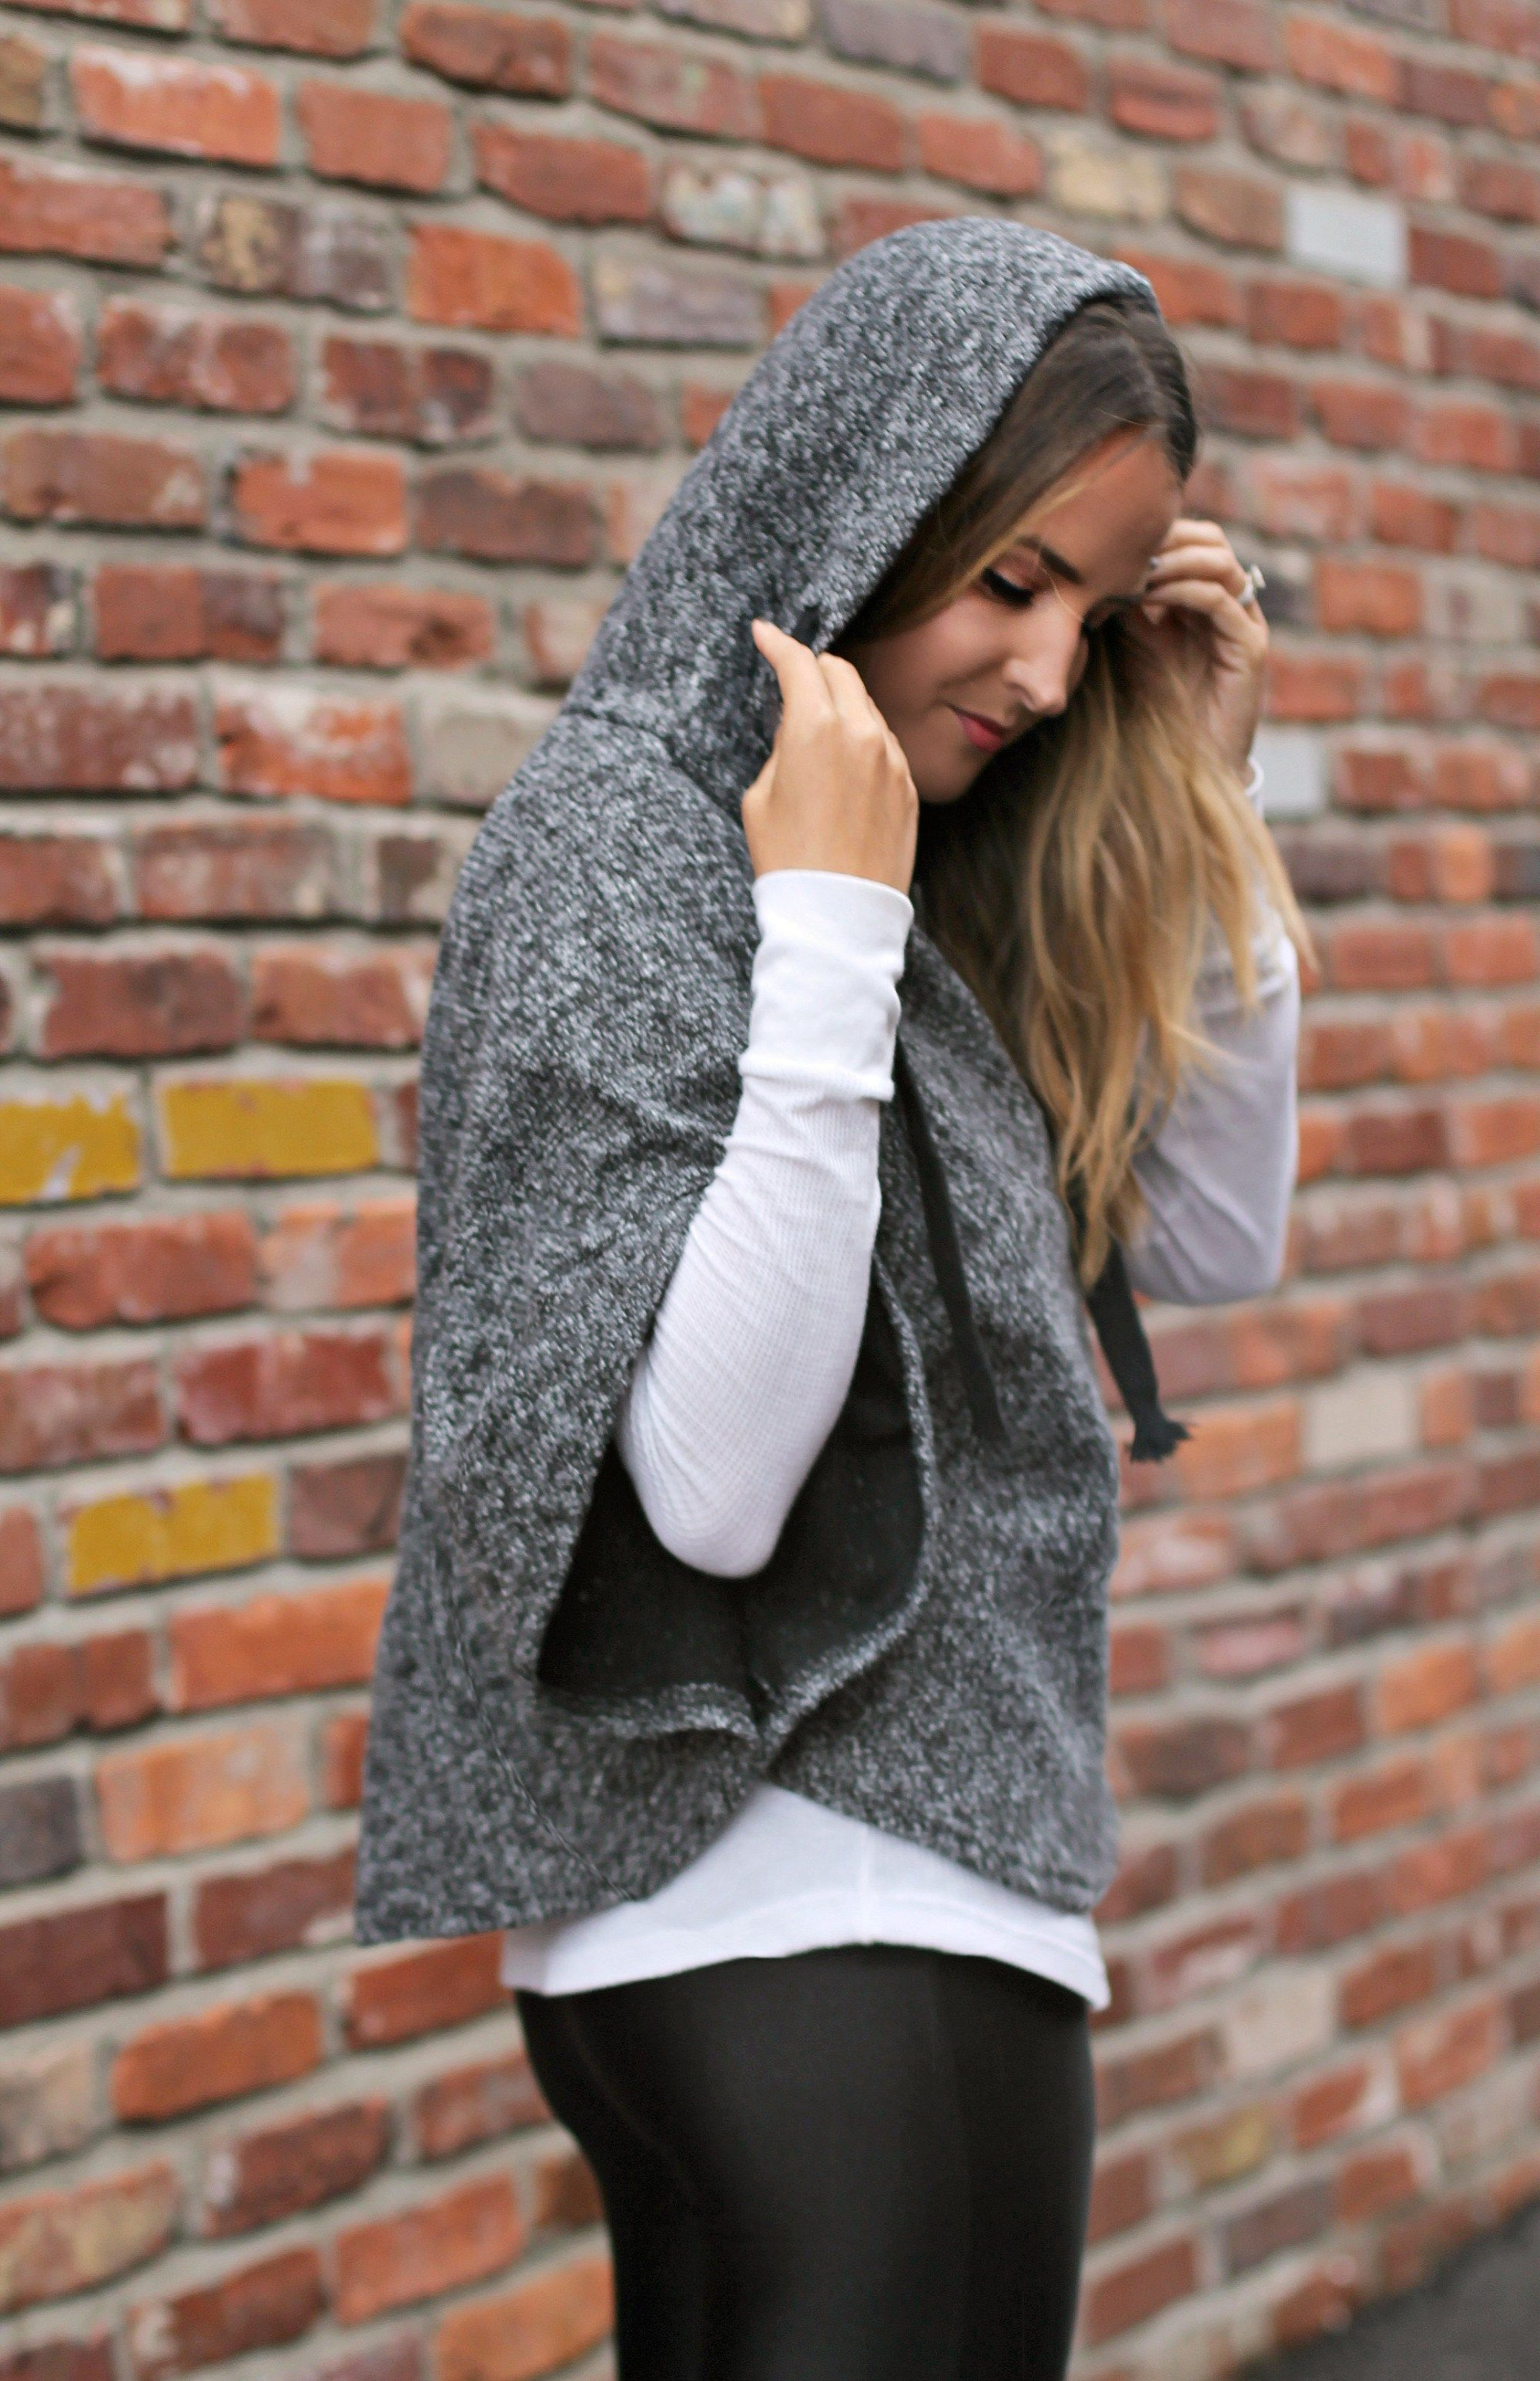 Grey Hooded Sweatshirt #athleisure #athleticstyle #mystyle #winterstyle #outfitideas #weekendstyle #weekendoutfitideas #brunchoutfitideas #rosegoldsneakers #sneakerstyle #nashvillestyle #nashvillefashionblogger #fashionblog #rippedleggings #casualoutfitideas